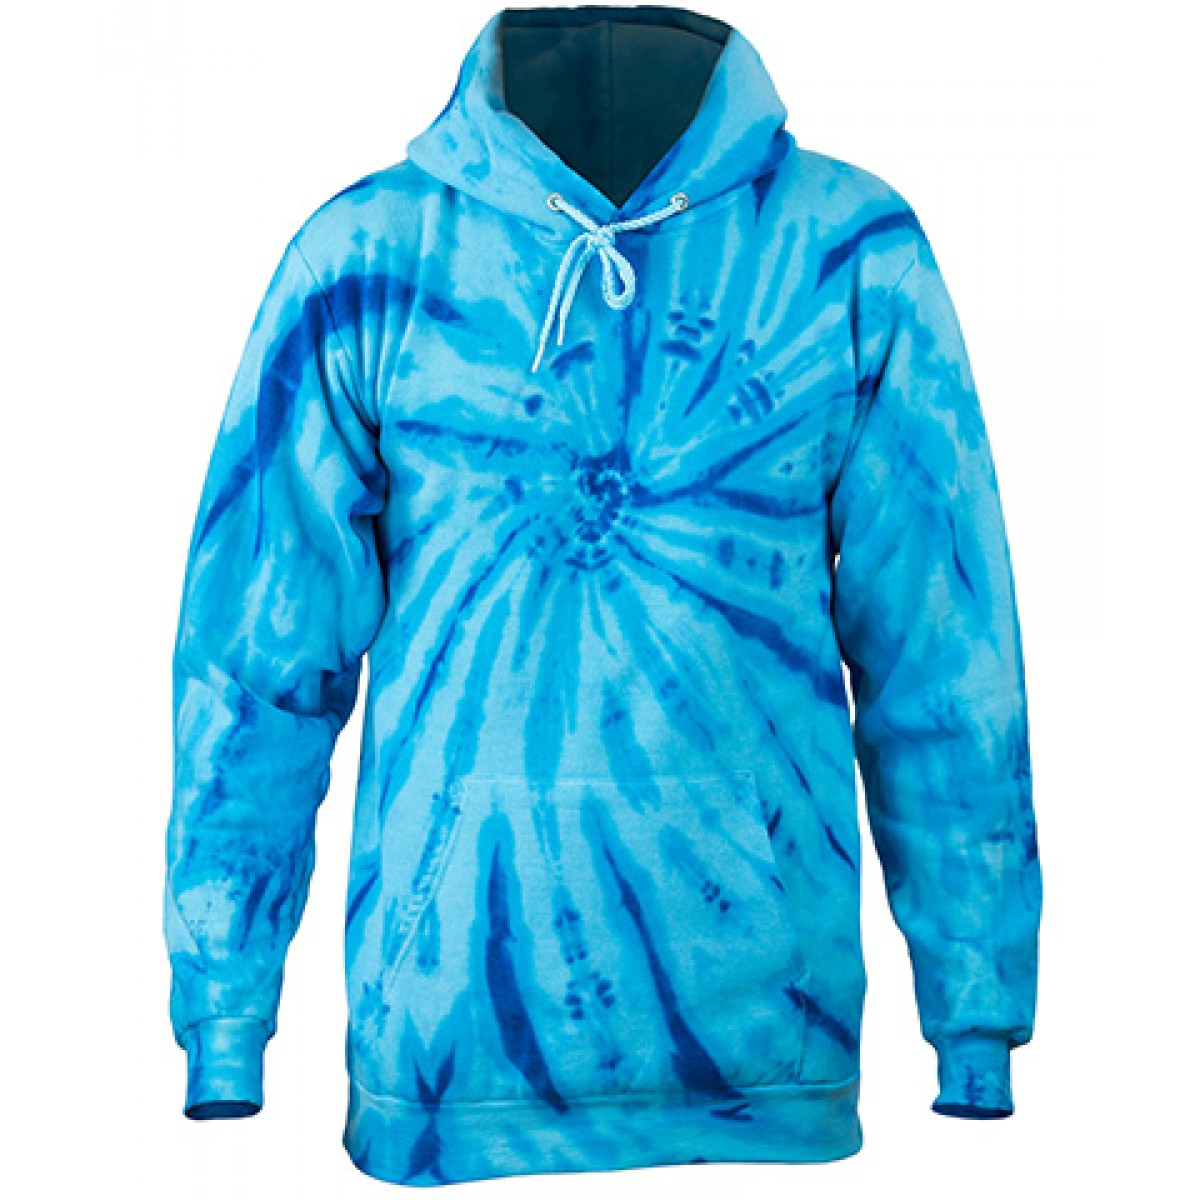 Tie-Dye Pullover Hooded Sweatshirt-Tropic Blue-YS